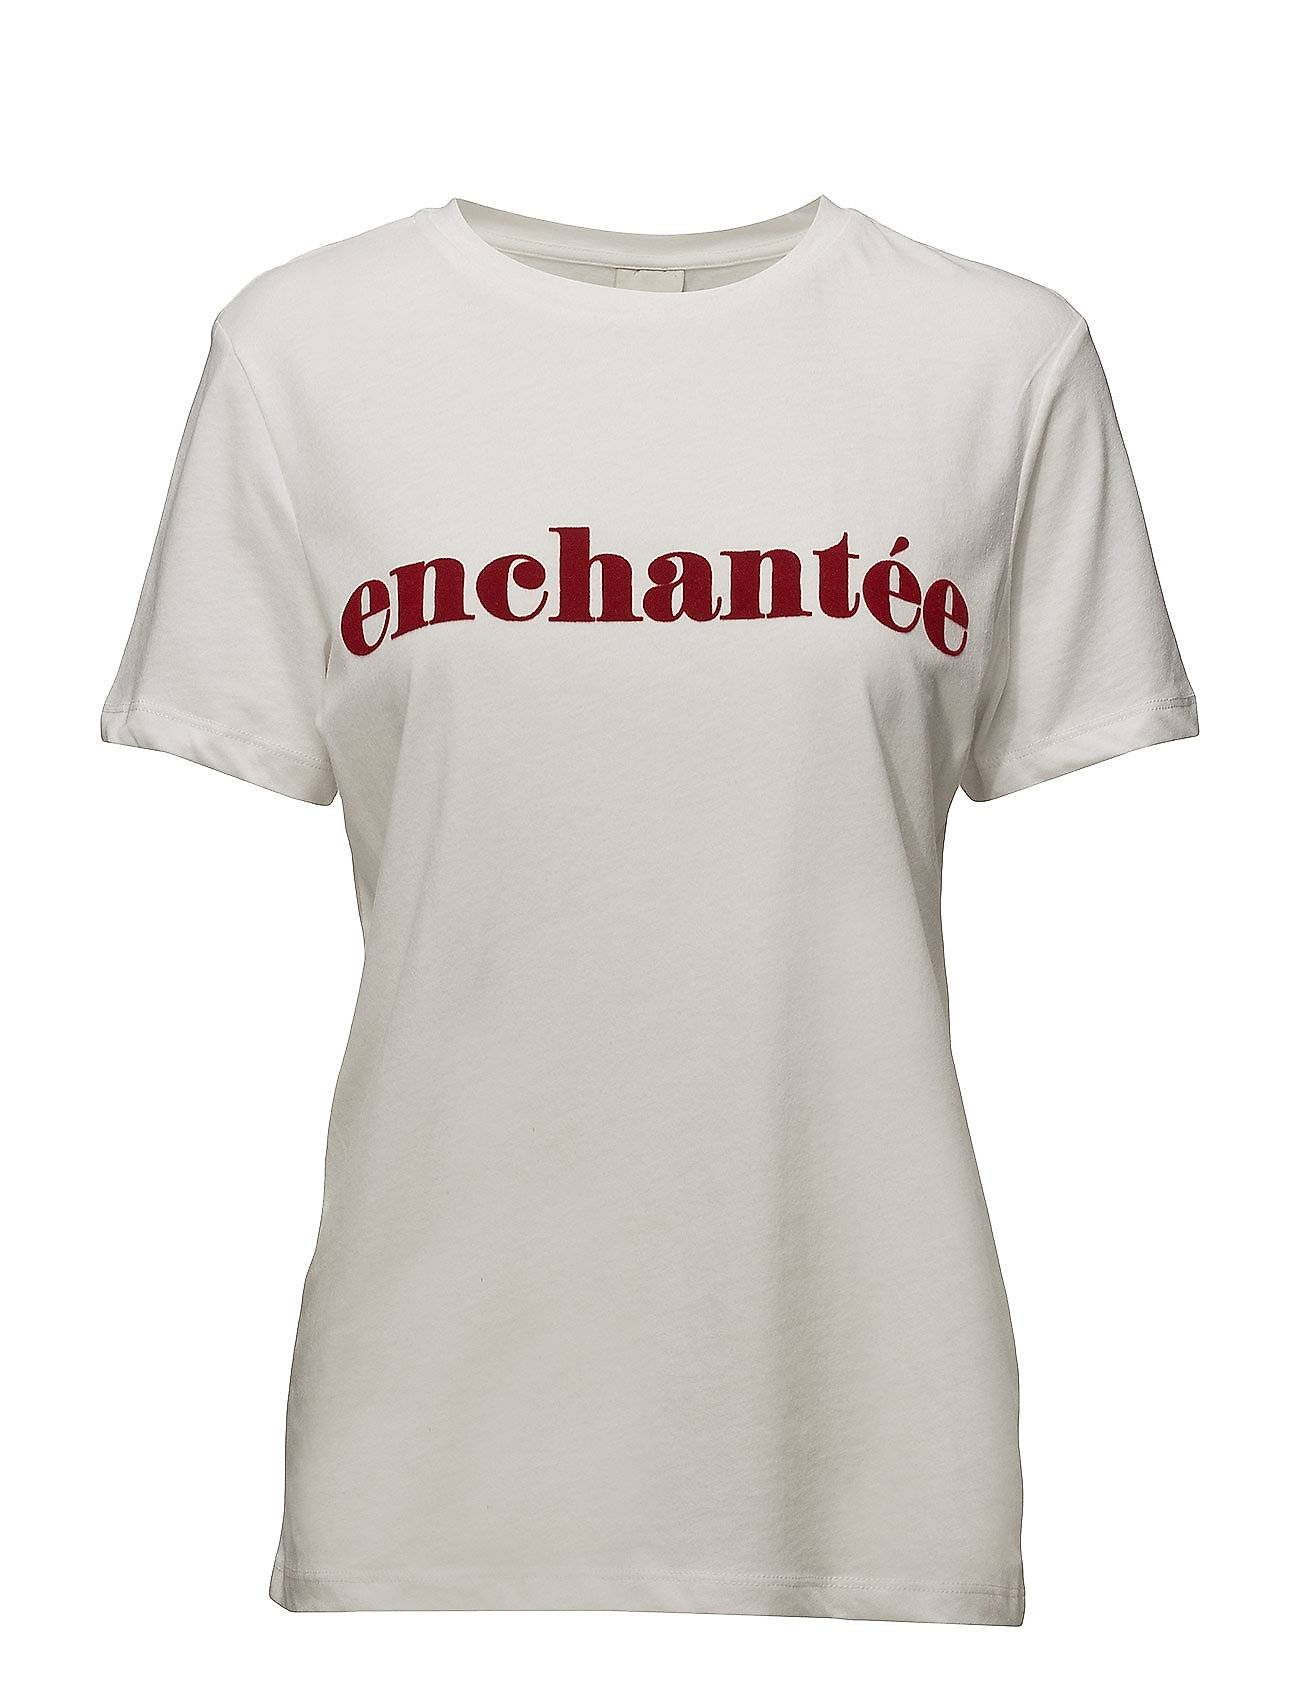 Selected Femme Sfenchantee Ss Tee